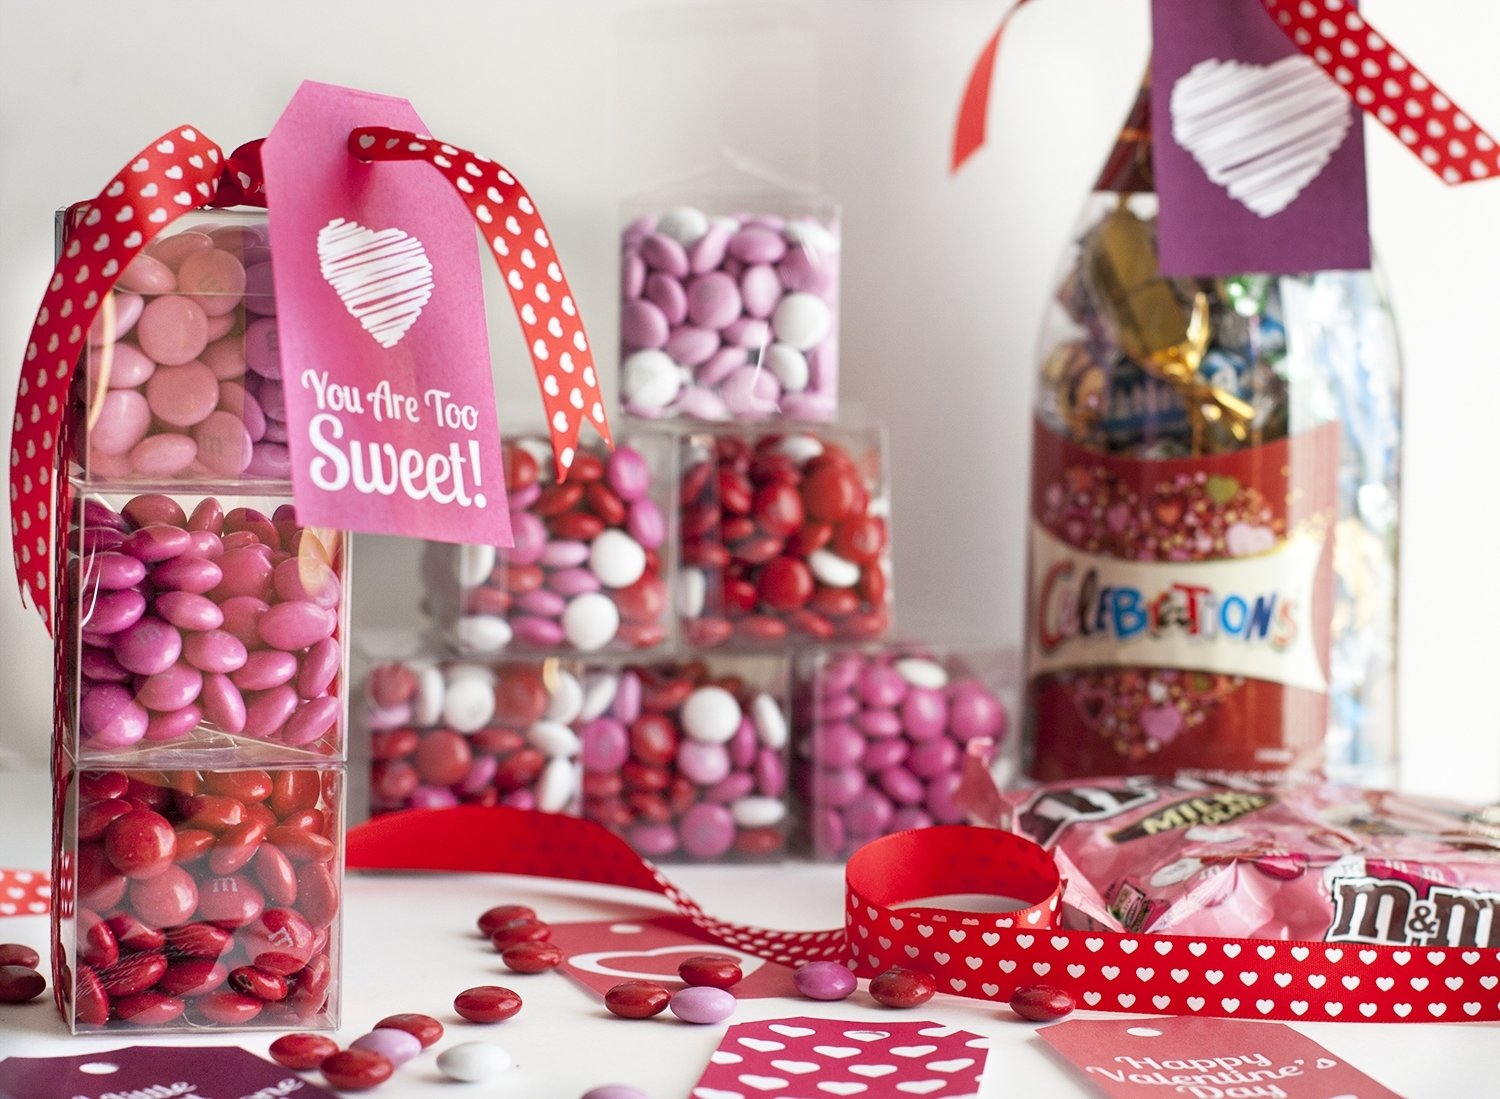 10 Awesome Cute Valentines Day Ideas For Girlfriend diy valentines day gift mini candy boxes printable gift tags 1 2020